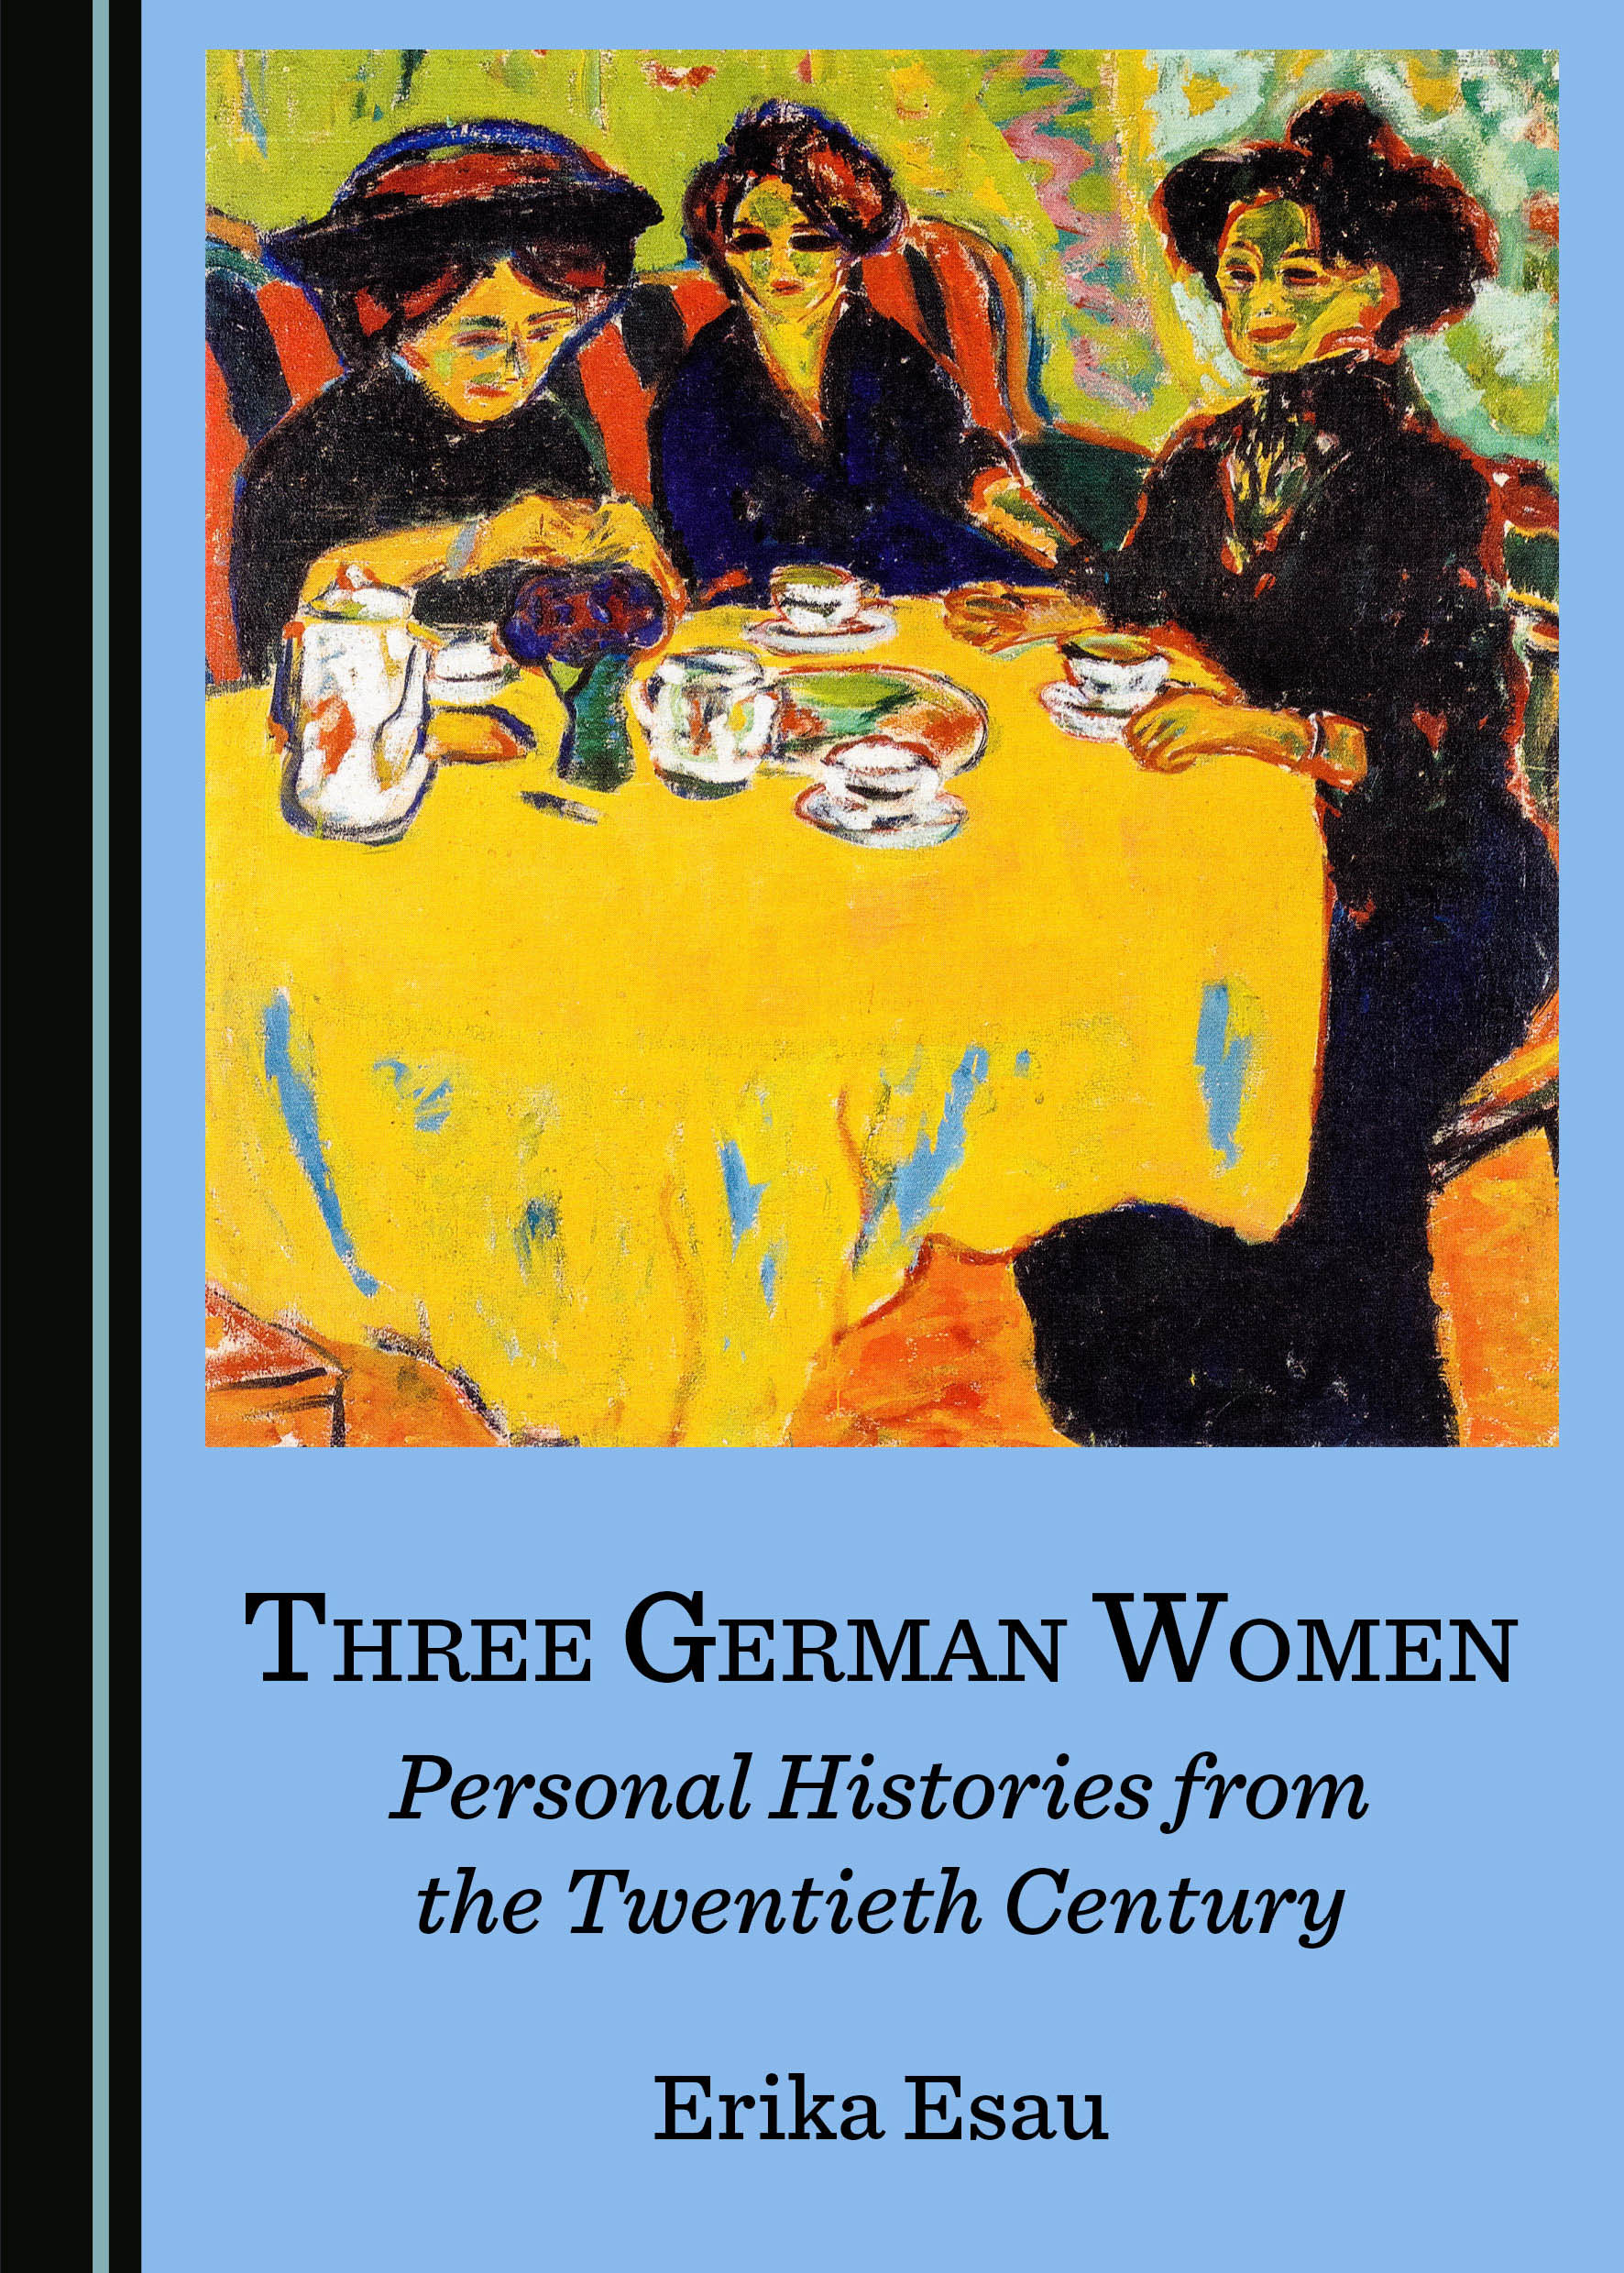 Three German Women: Personal Histories from the Twentieth Century